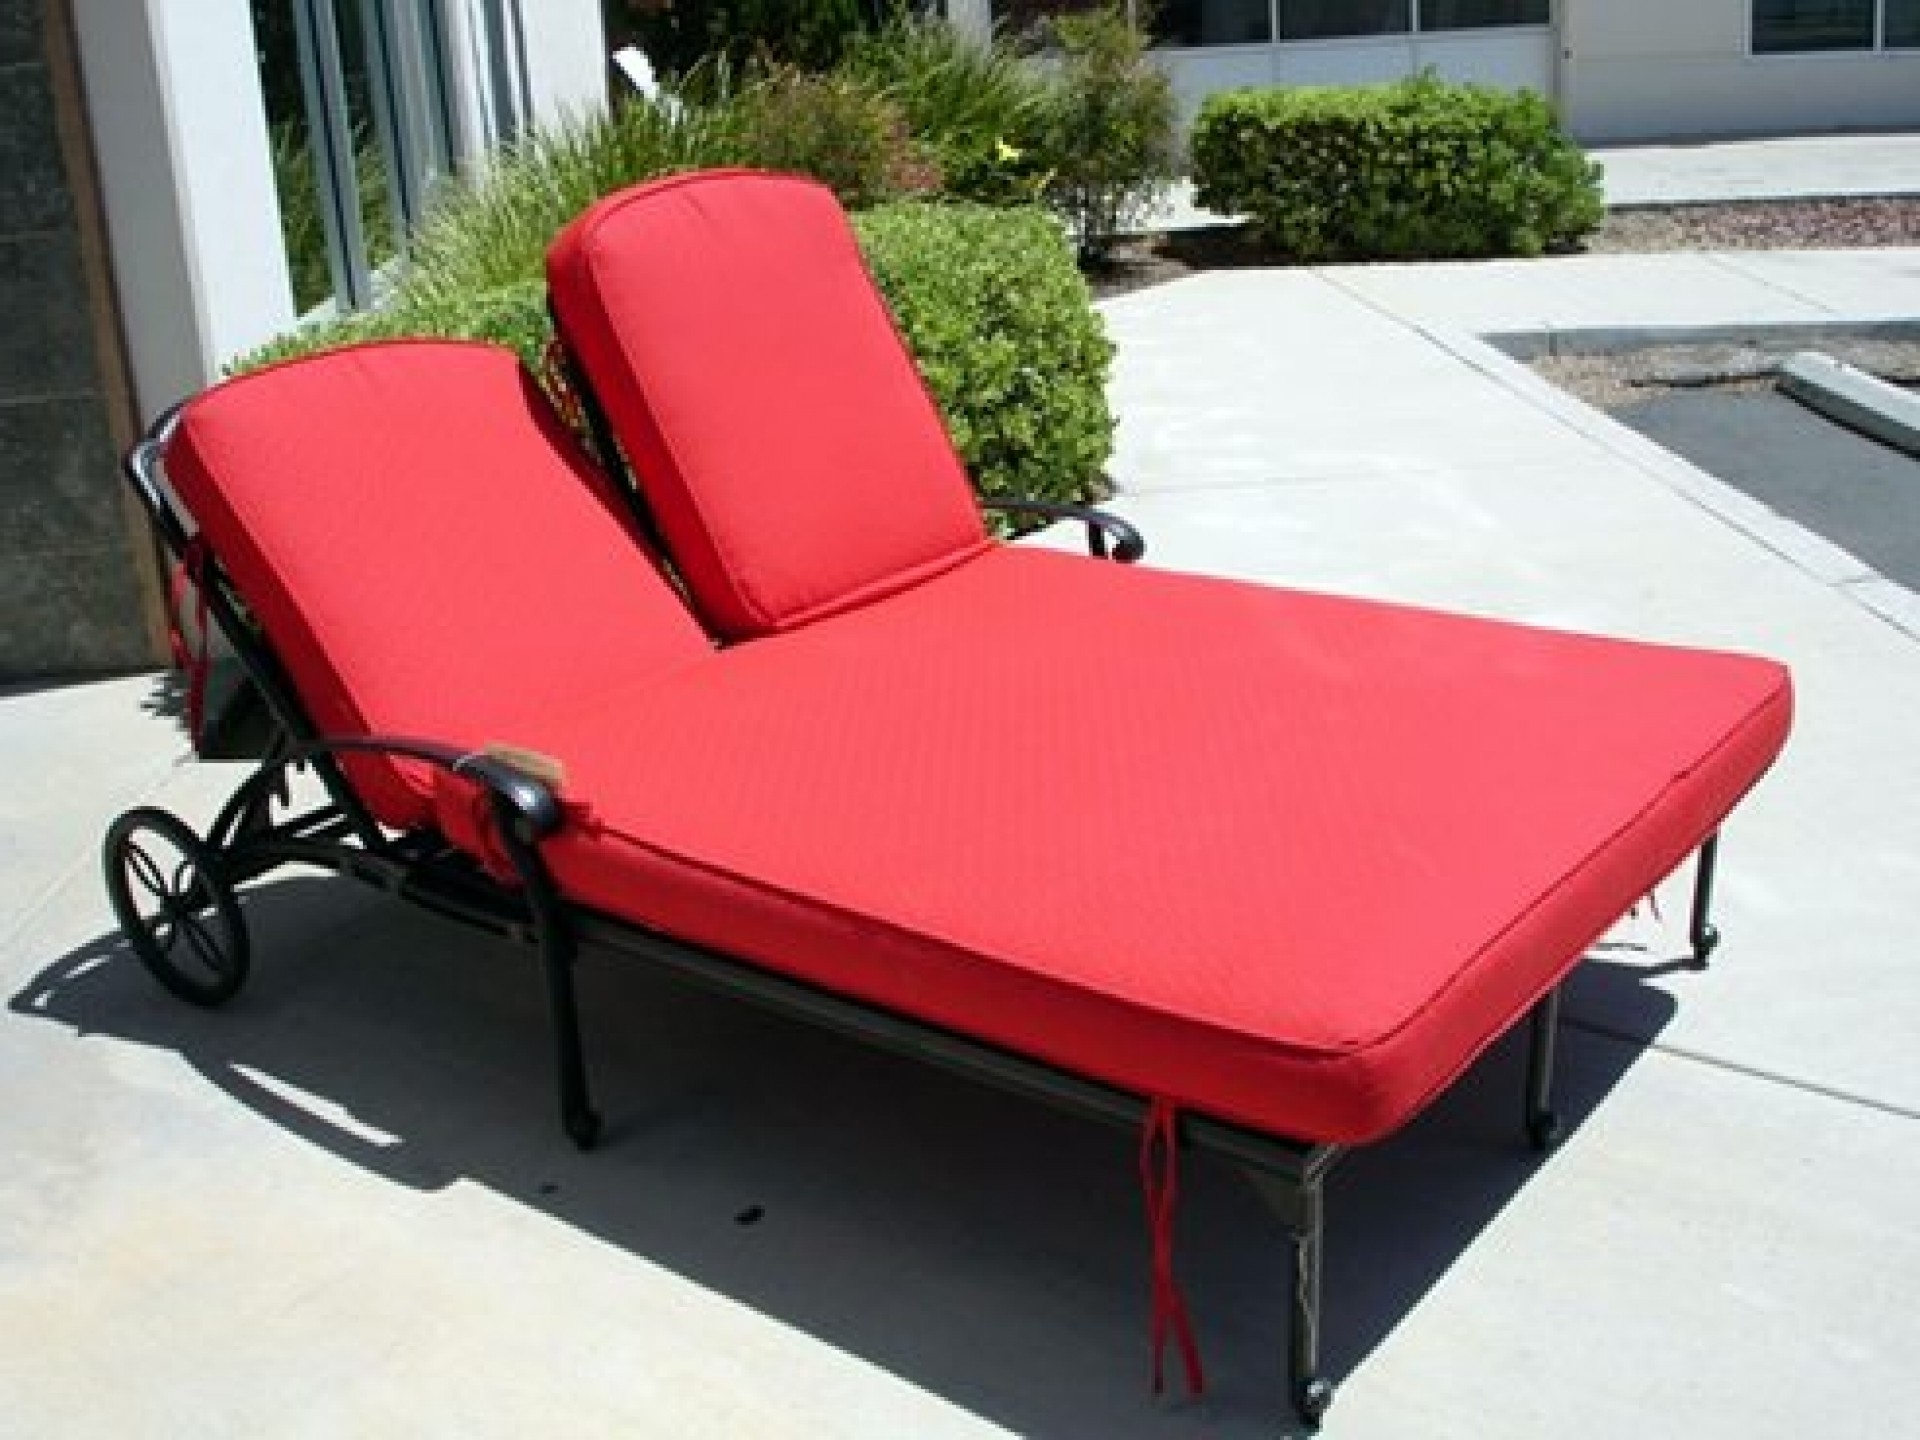 Most Up To Date Cushion For Chaise Lounge Chair • Lounge Chairs Ideas For Double Chaise Lounge Cushions (View 3 of 15)